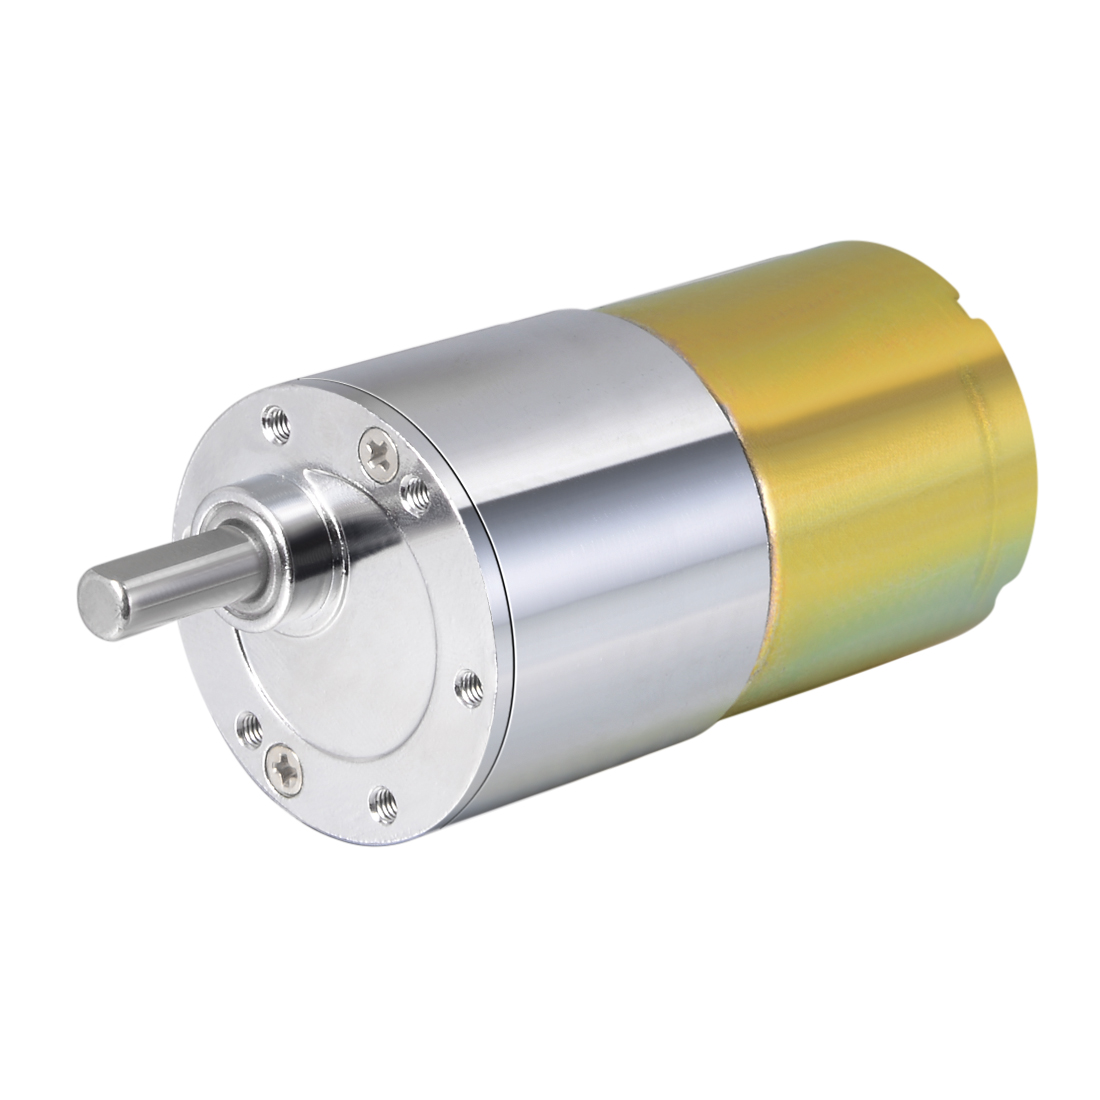 24V DC 50 RPM Gear Motor High Torque Reduction Gearbox Eccentric Output Shaft